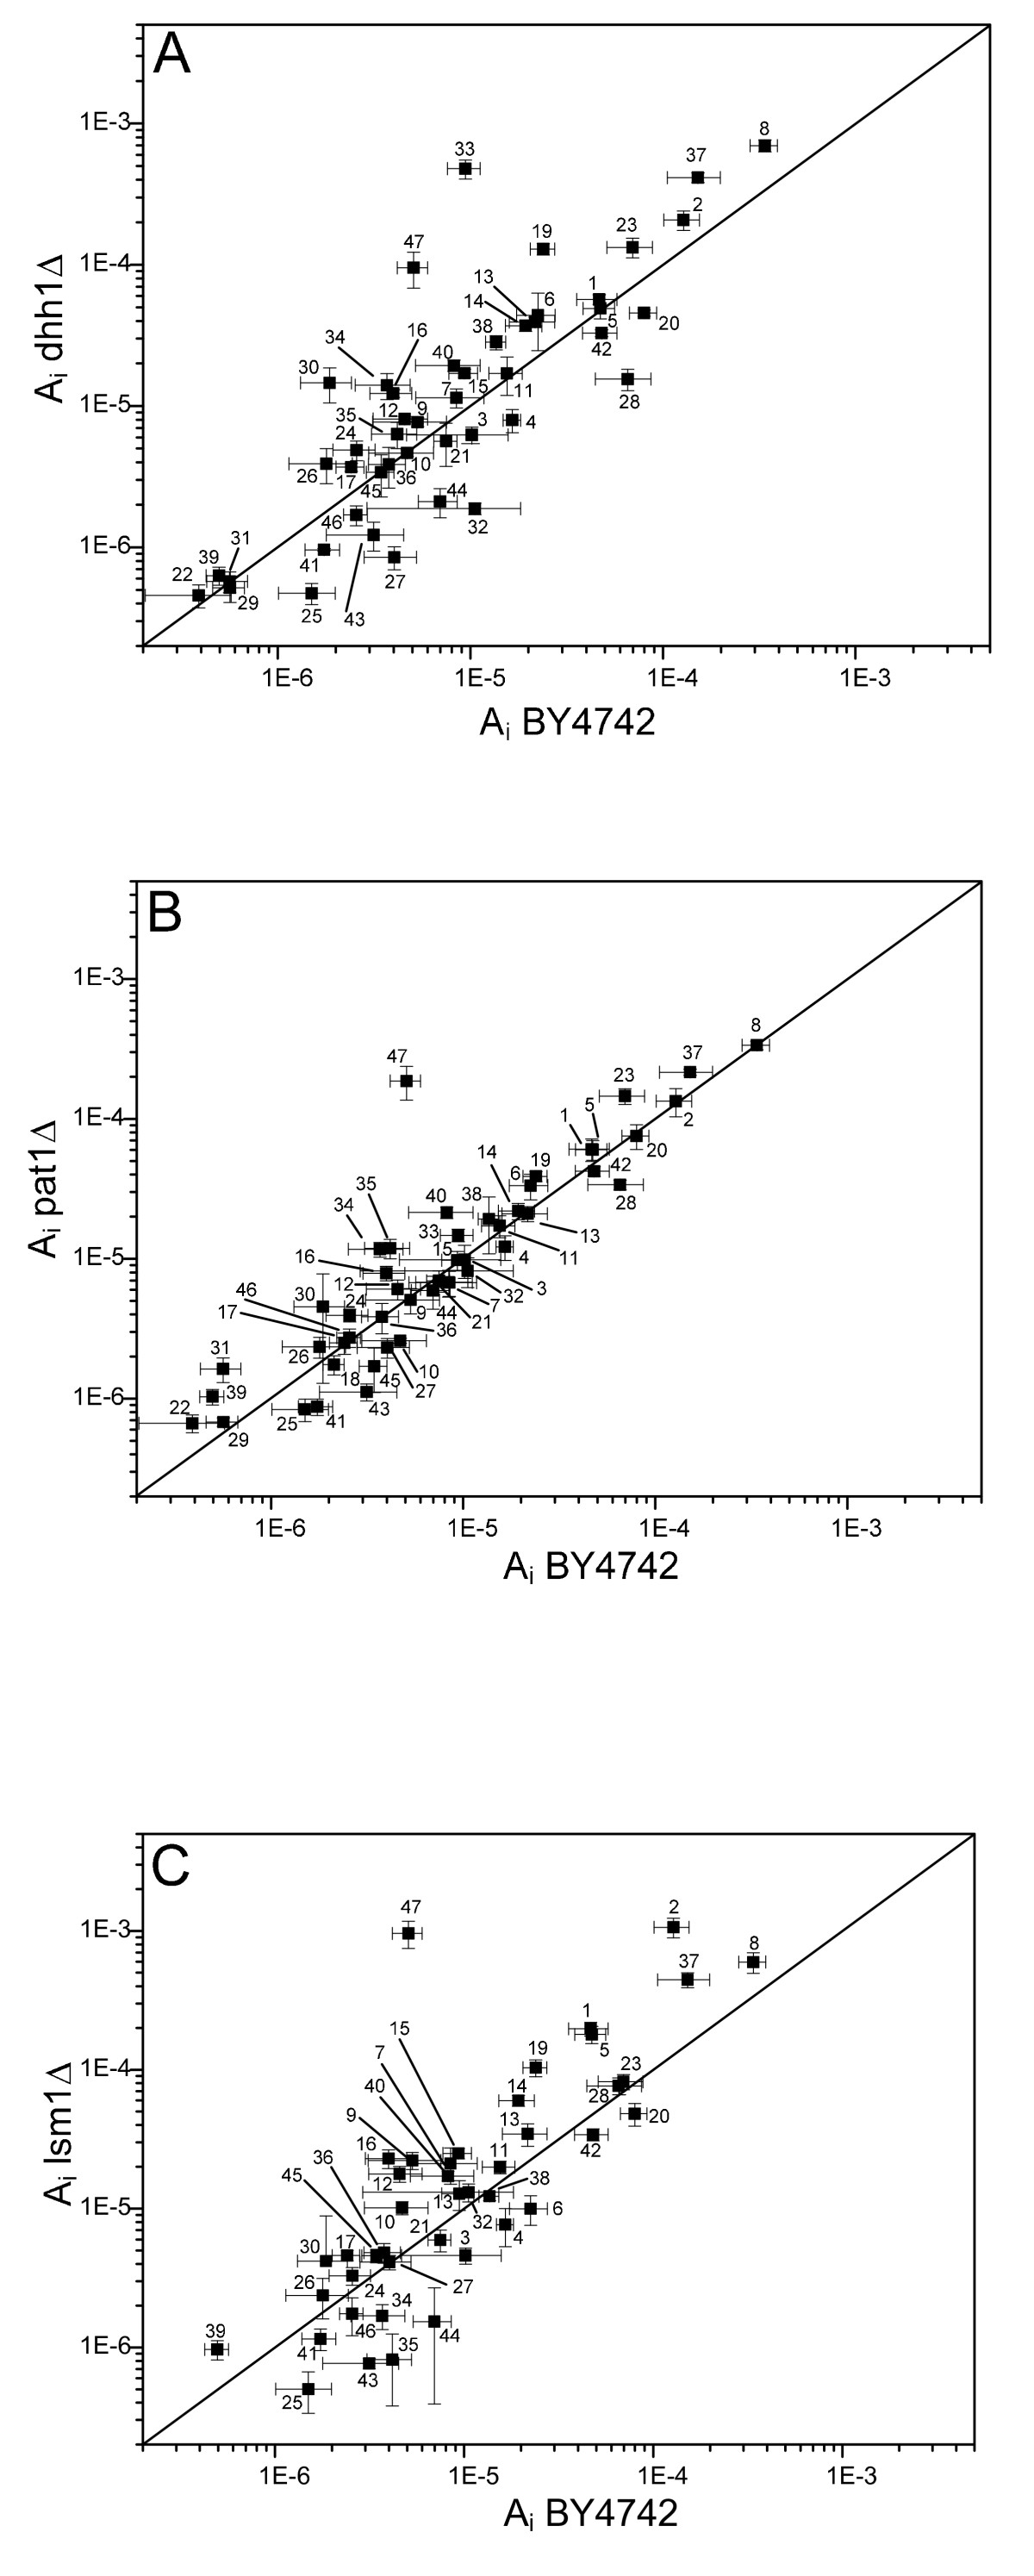 http://static-content.springer.com/image/art%3A10.1186%2F1475-2859-8-12/MediaObjects/12934_2008_Article_332_Fig3_HTML.jpg